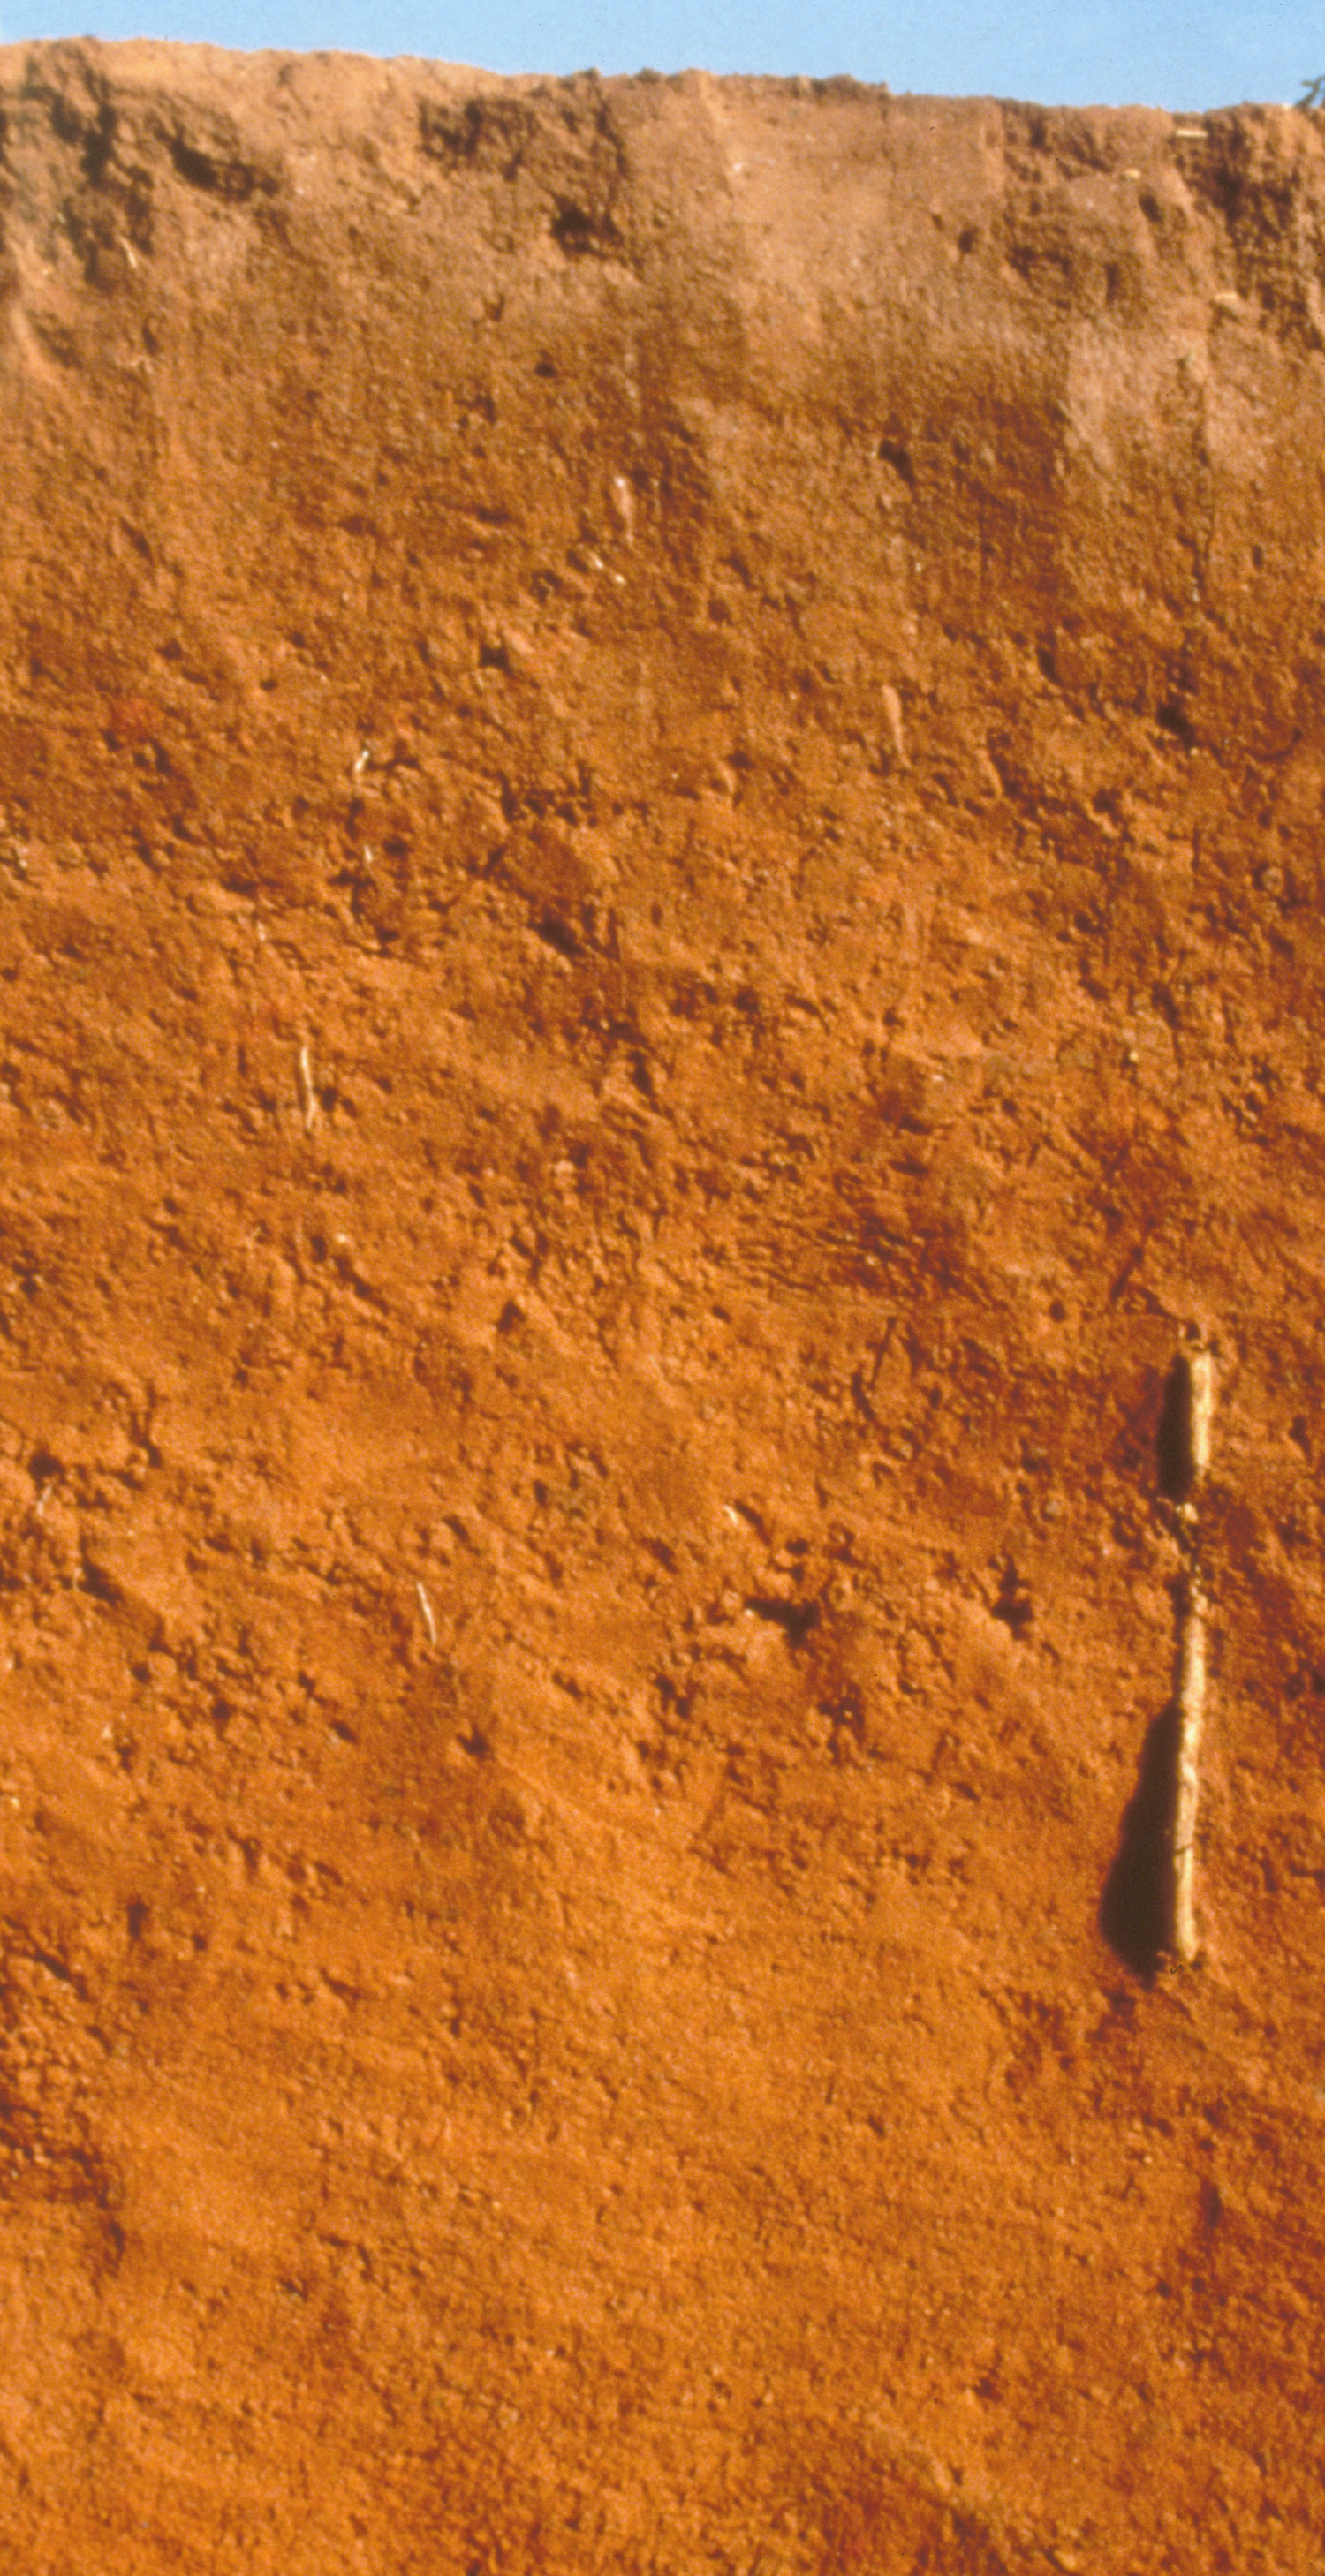 Red and yellow soil images images for Soil yellow color